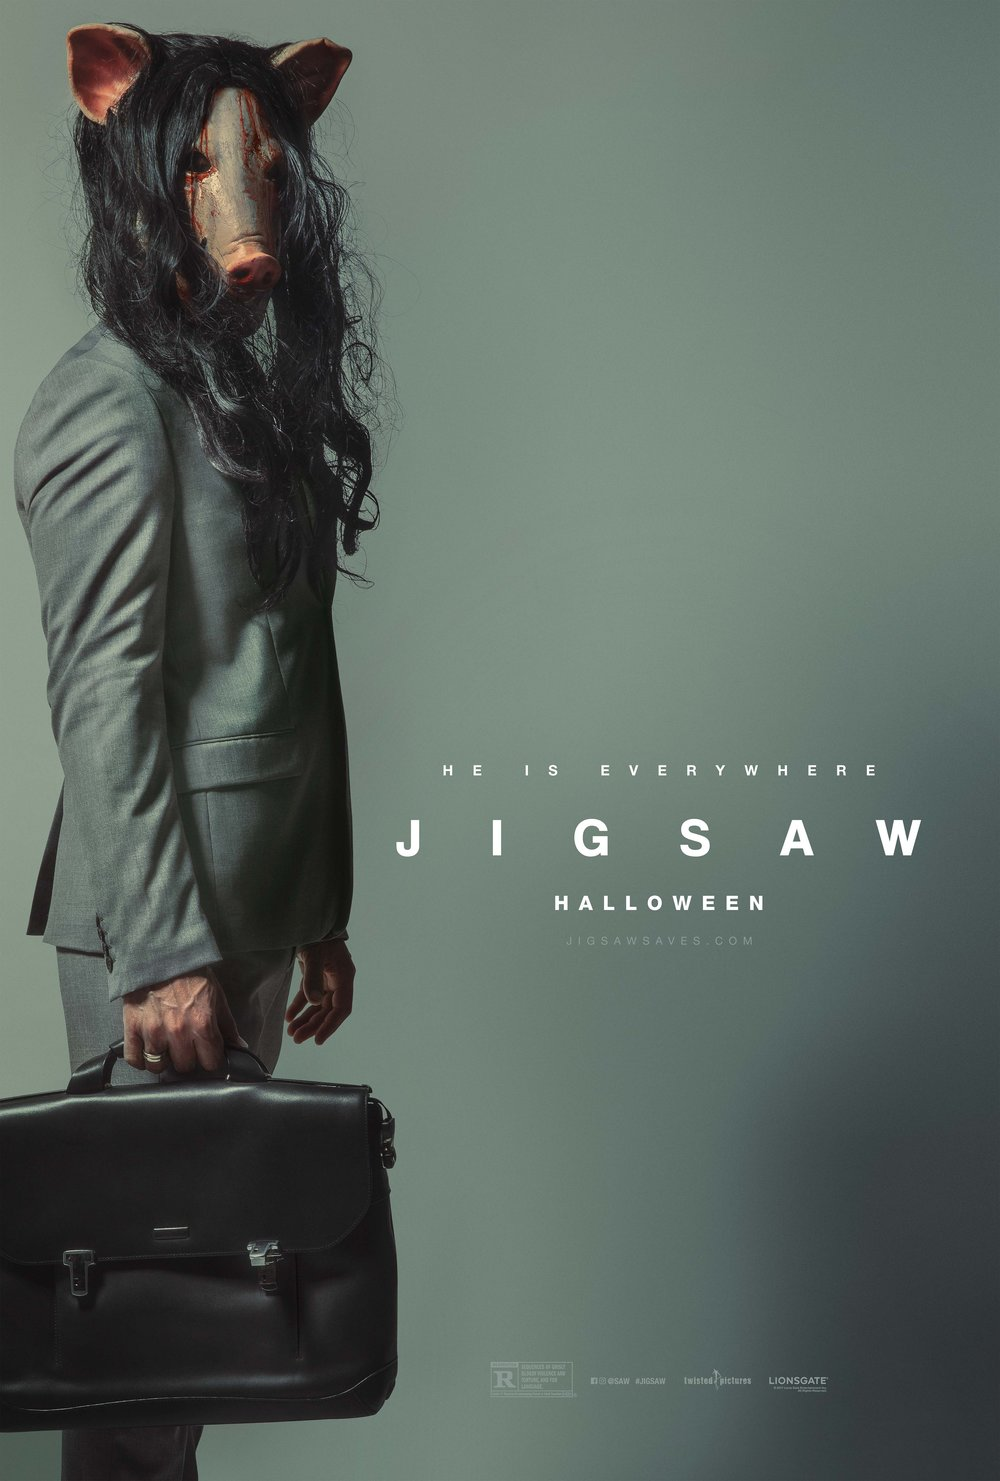 Jigsaw: He is Everywhere